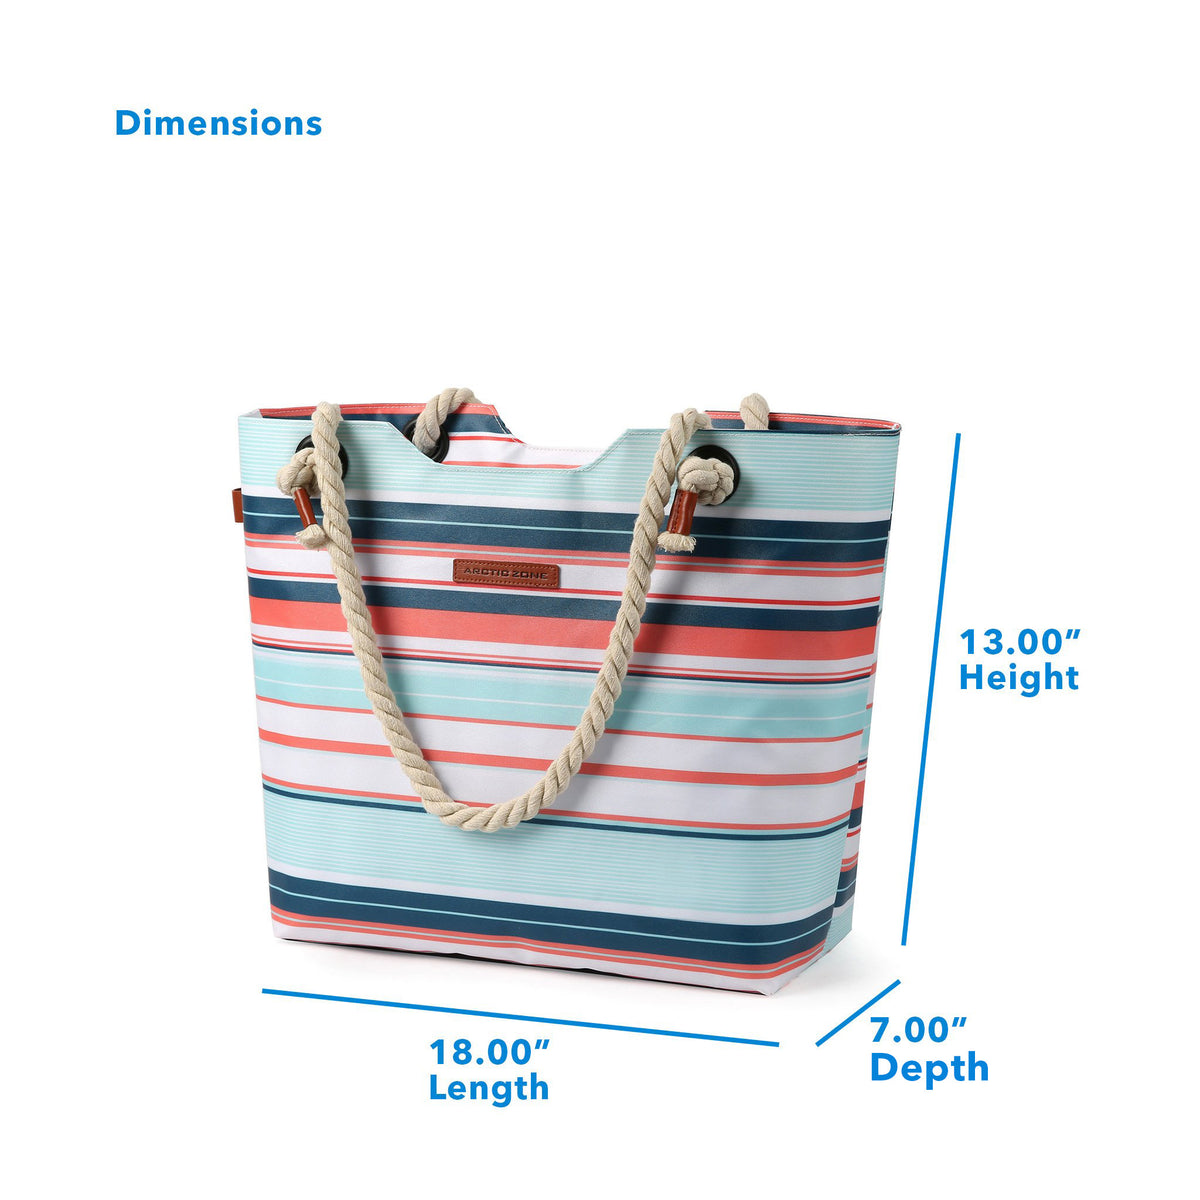 "Arctic Zone® 16 Can Oversized Commuter Beach Tote - Stripes - Dimensions: (L x D x H) 18.00"" x 7.00"" x 13.00"""